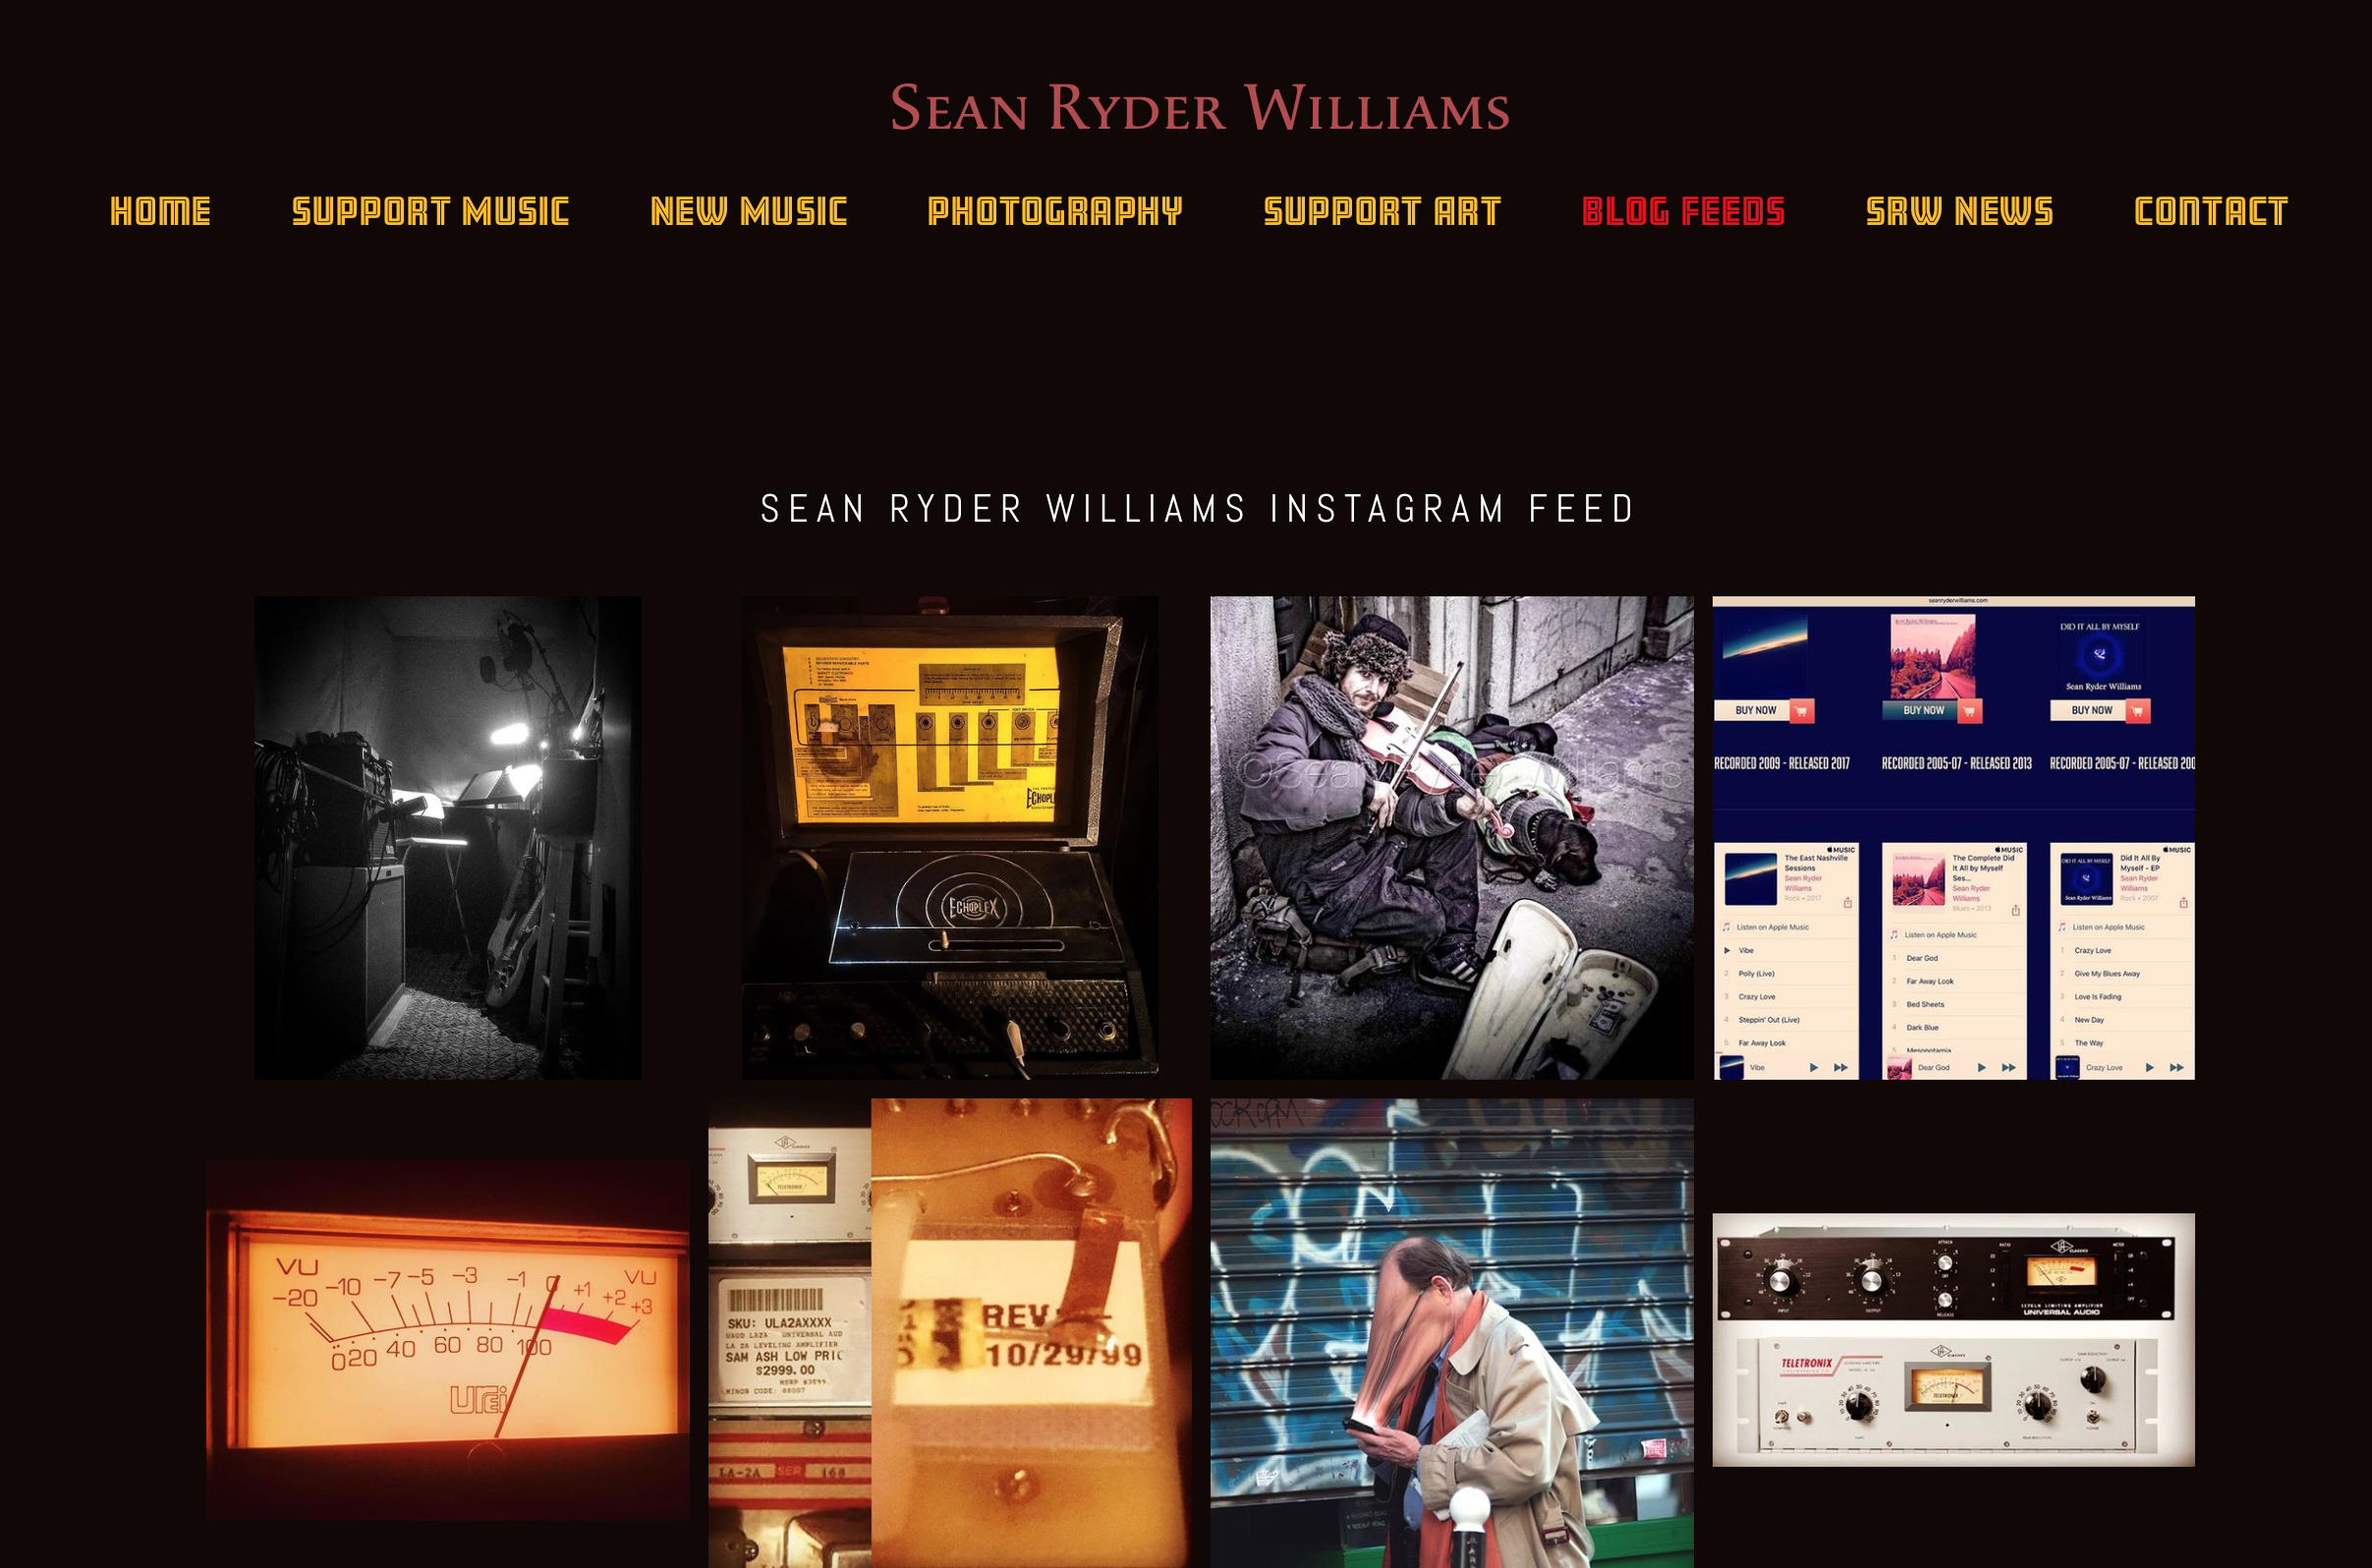 Sean_Ryder_Williams_Image_5.png